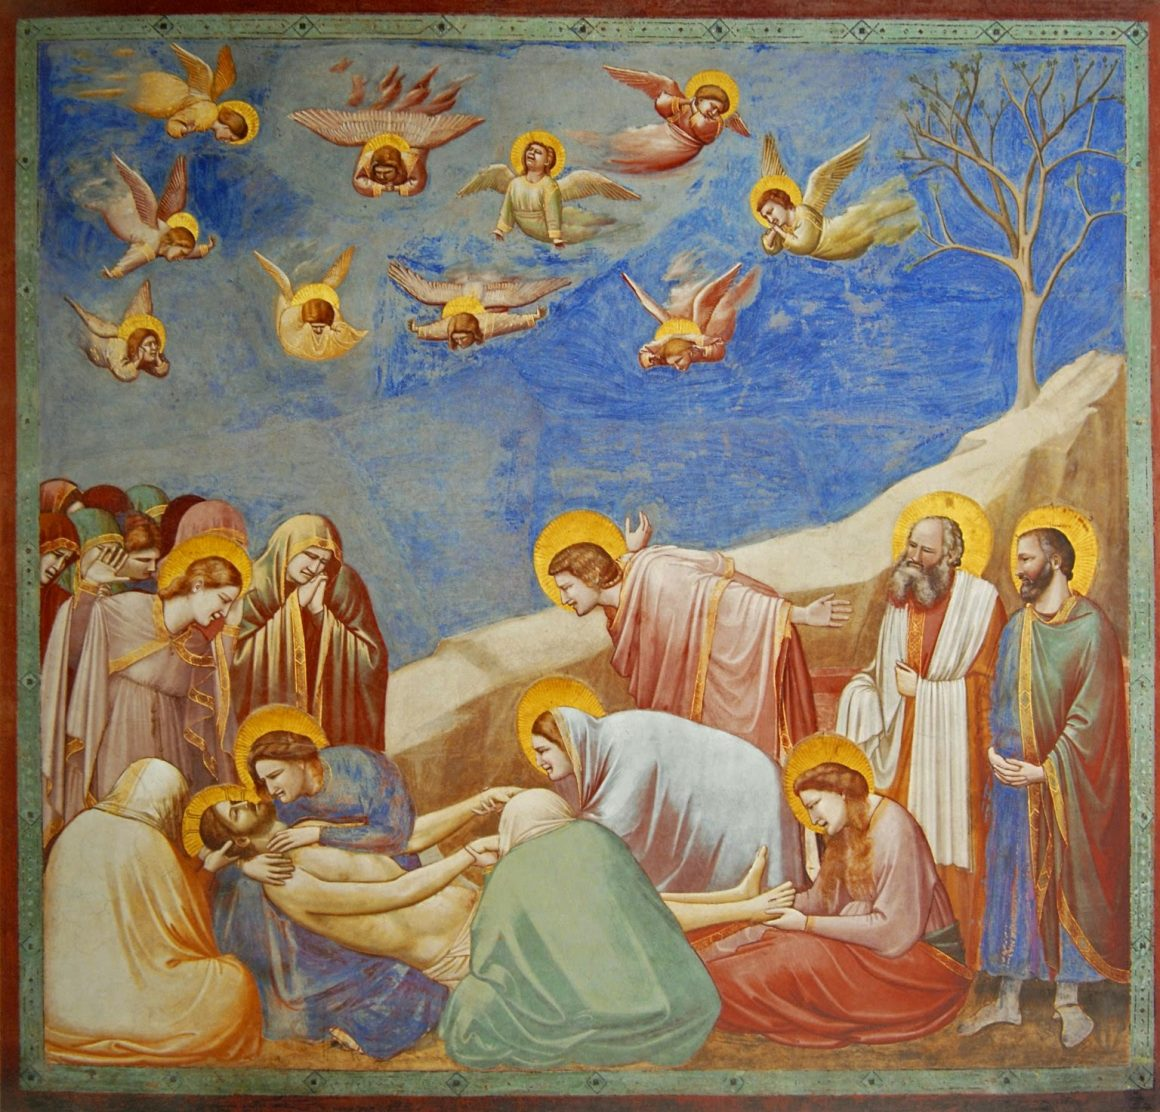 Lamentation painting by Giotto